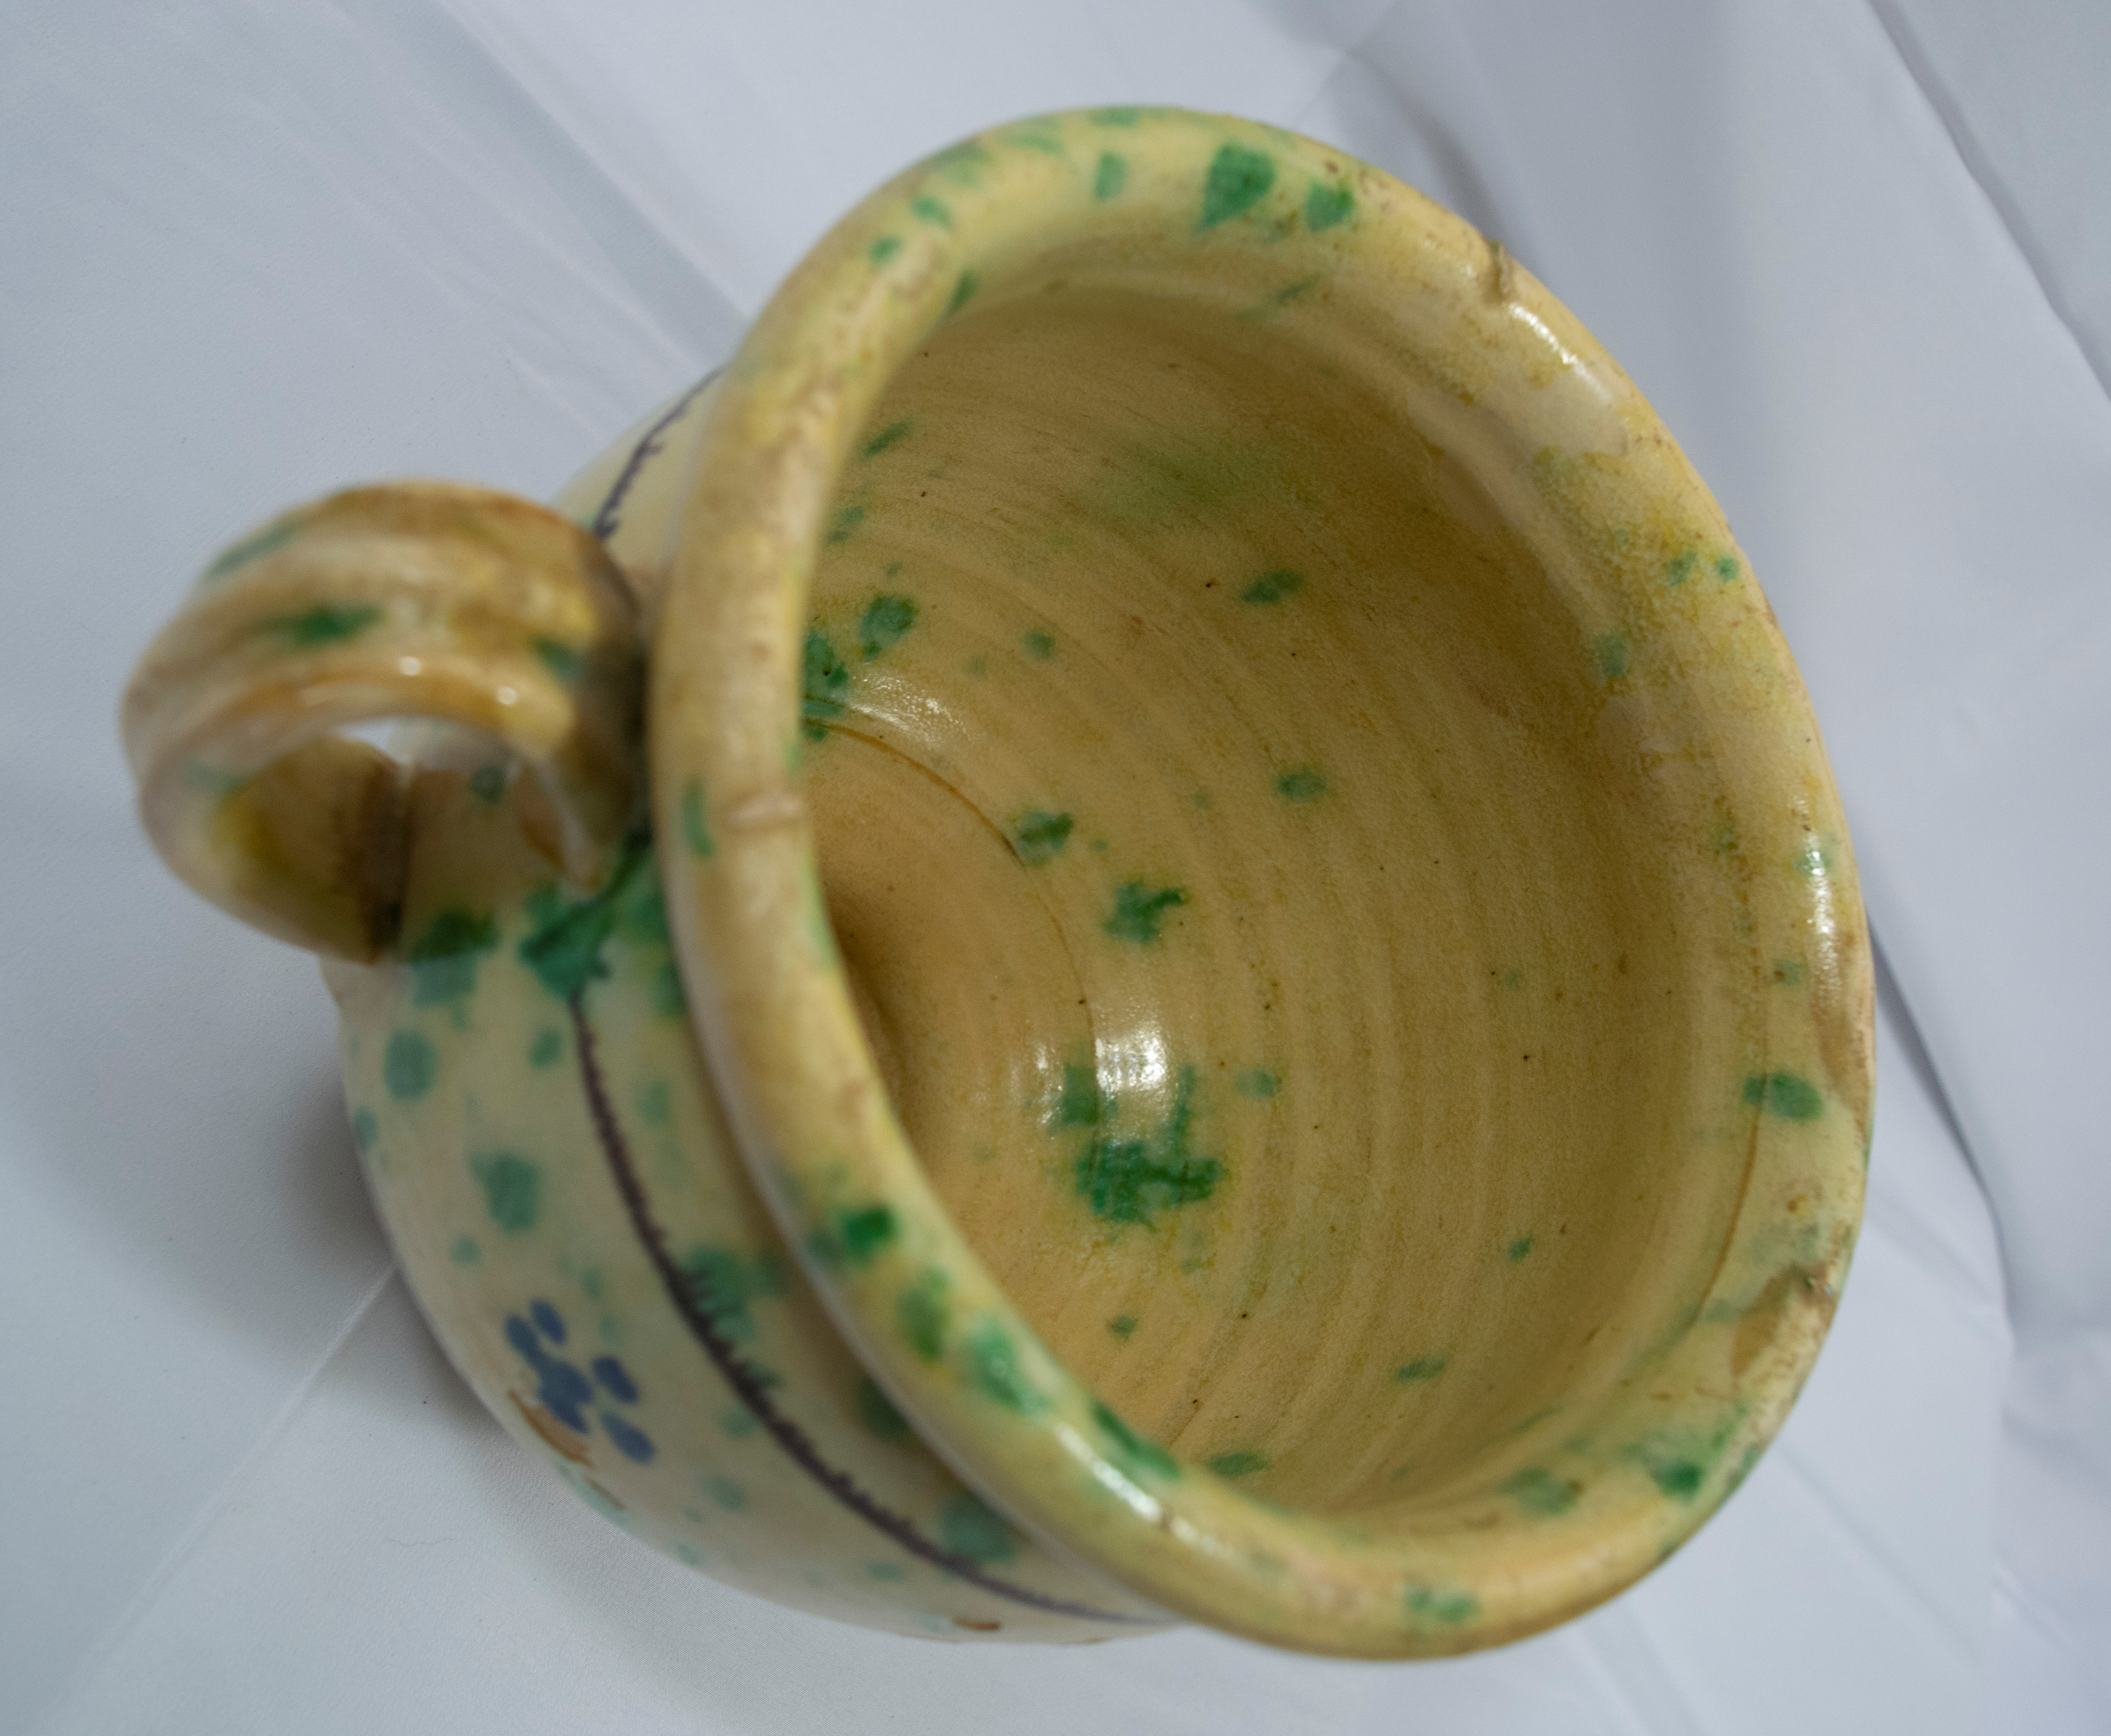 Lily Antiques image (4 of 7)